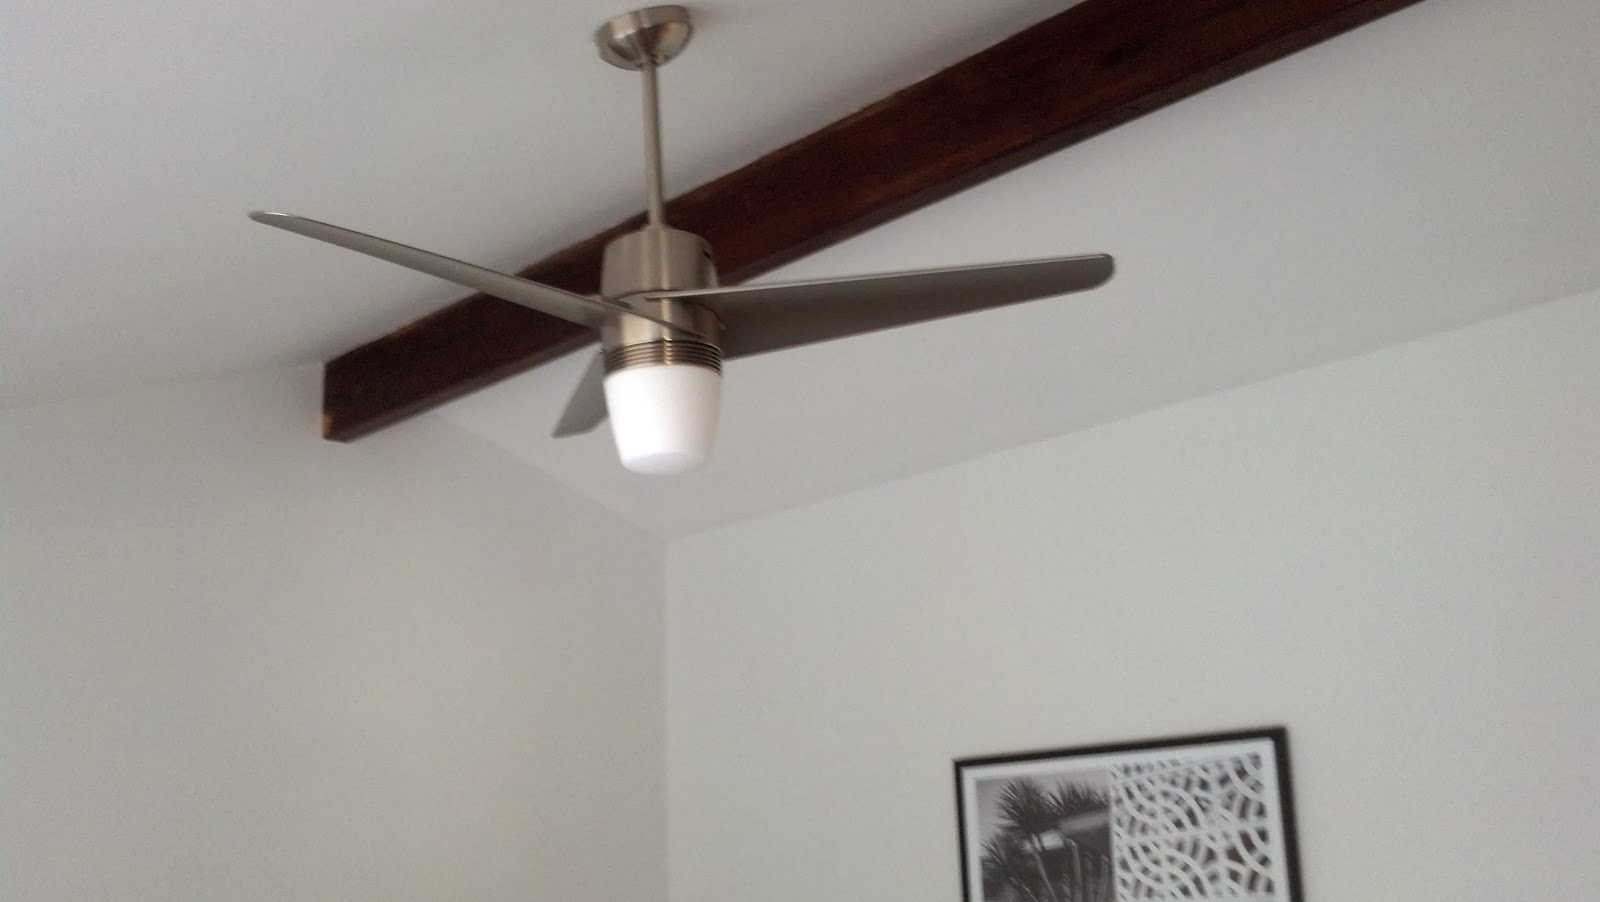 Midmod renovation december 2013 the ceiling fan is modern fan companys velo with the added halogen light in brushed nickel mozeypictures Gallery